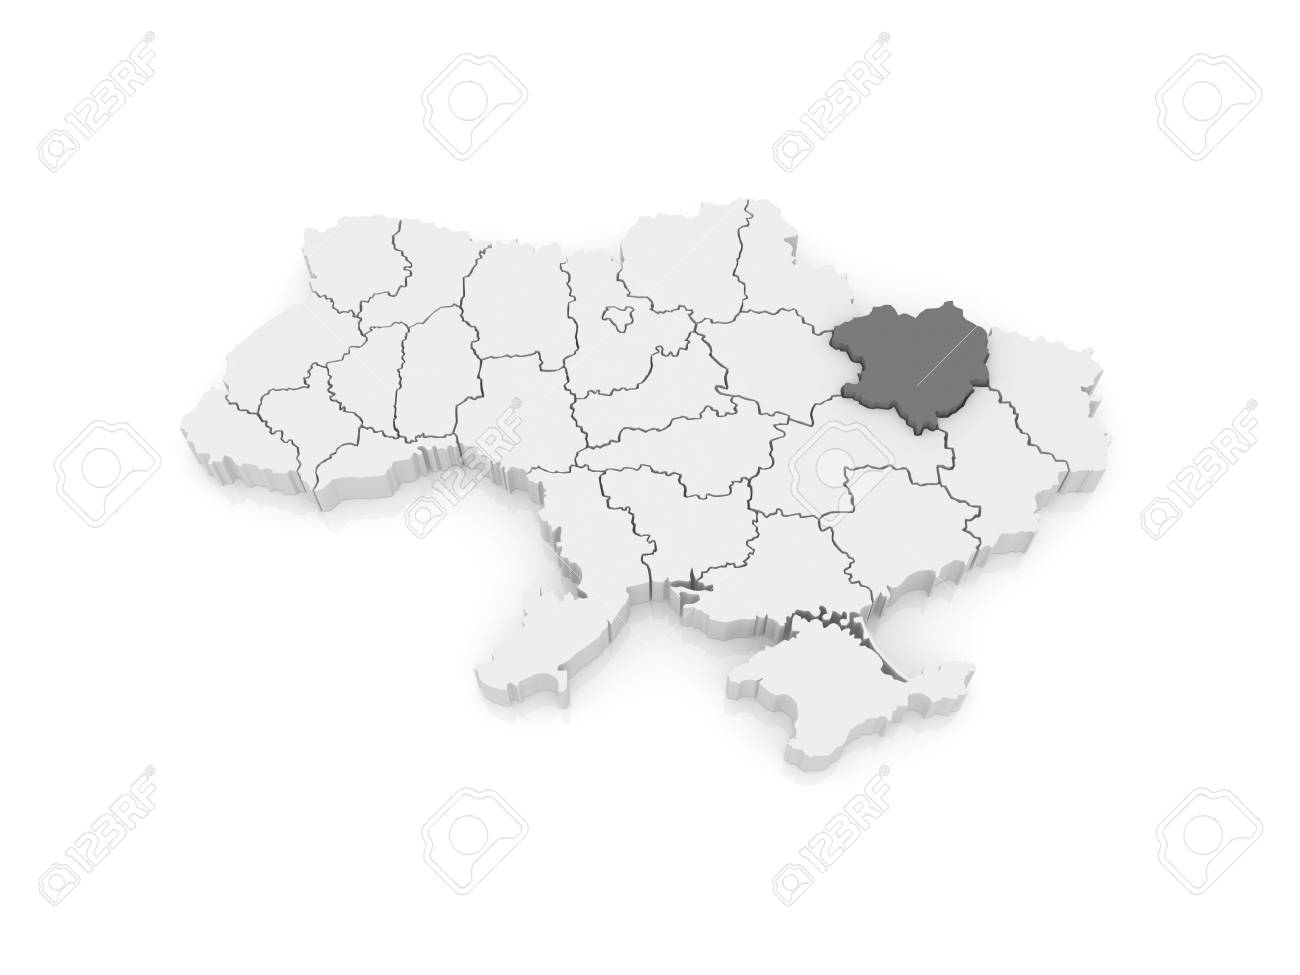 Map of Kharkov region. Ukraine. 3d Kharkov Ukraine Map on kharkiv military map, the lake of ozarks map, odessa ukraine map, crimea region ukraine map, kiev map, minsk map, kharkiv ukraine map, kramatorsk ukraine map, donetsk map, vinnytsia ukraine map, ukraine military bases map, east ukraine map, poltava map, bessarabia ukraine map, ato ukraine map, detailed city street map, belaya tserkov ukraine map, ukraine religion map, donbass ukraine map, dnipropetrovsk ukraine map,